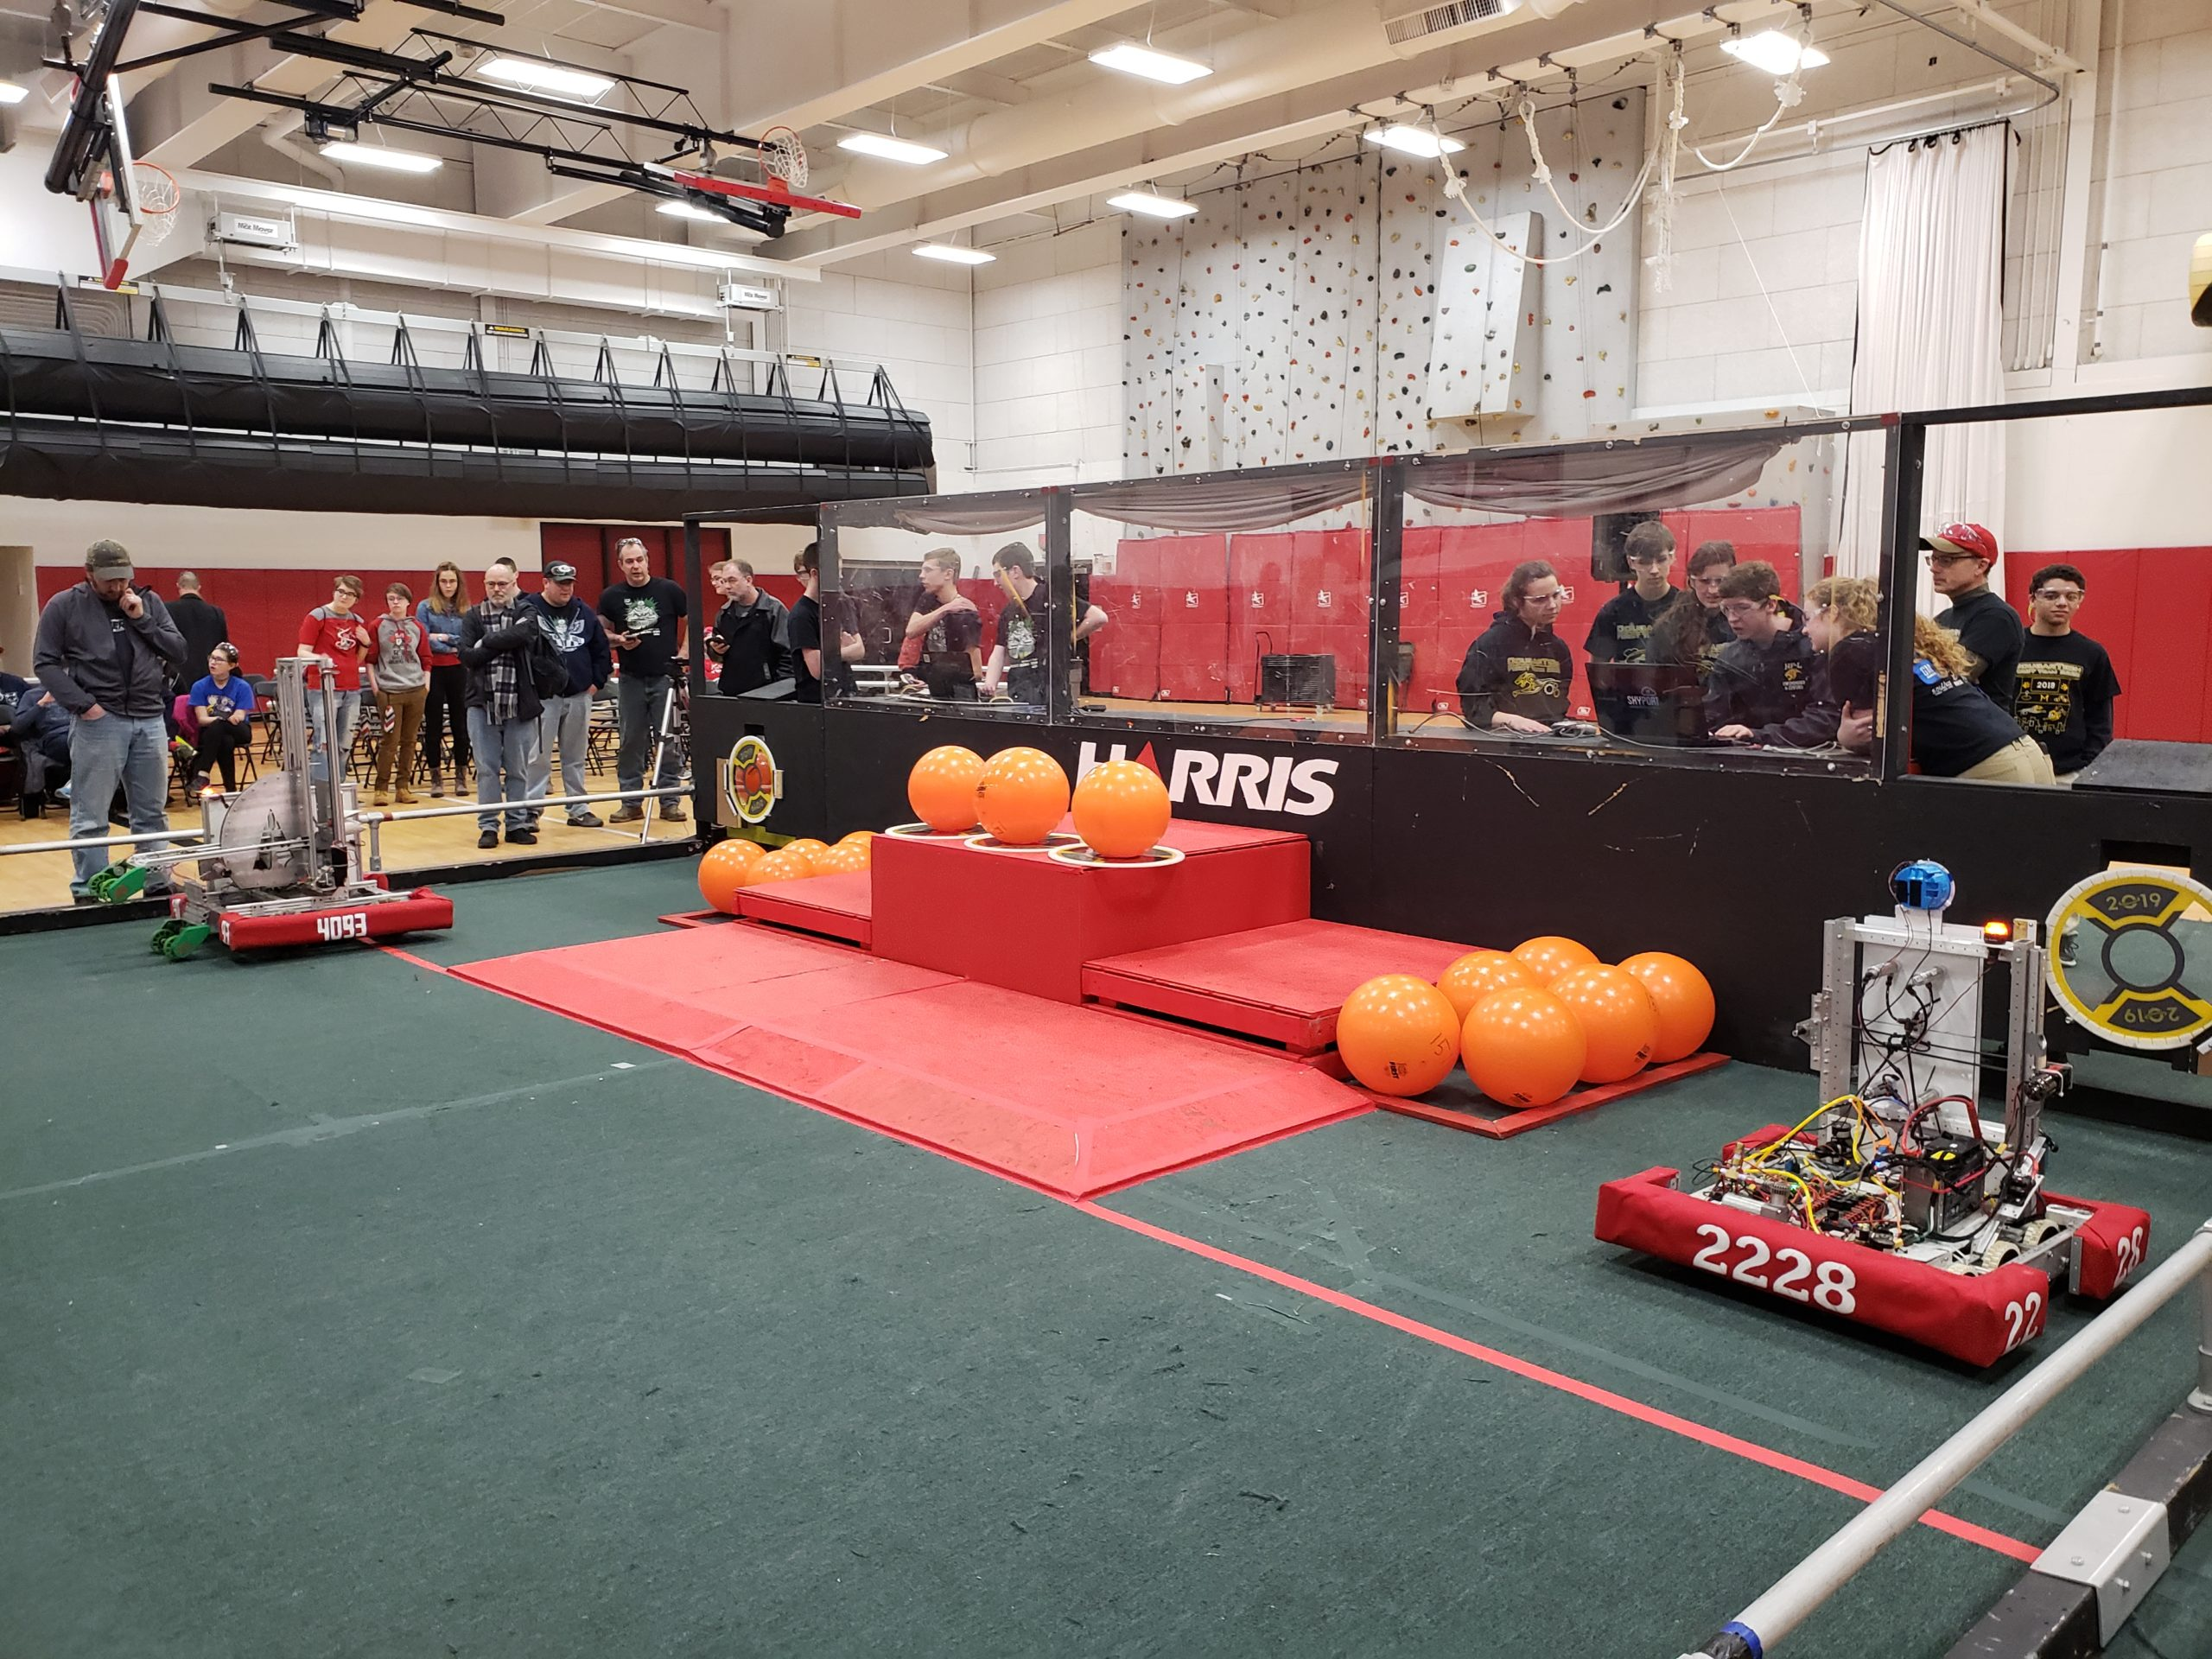 Photo of robotics field with 2 robots and many orange balls and spectators